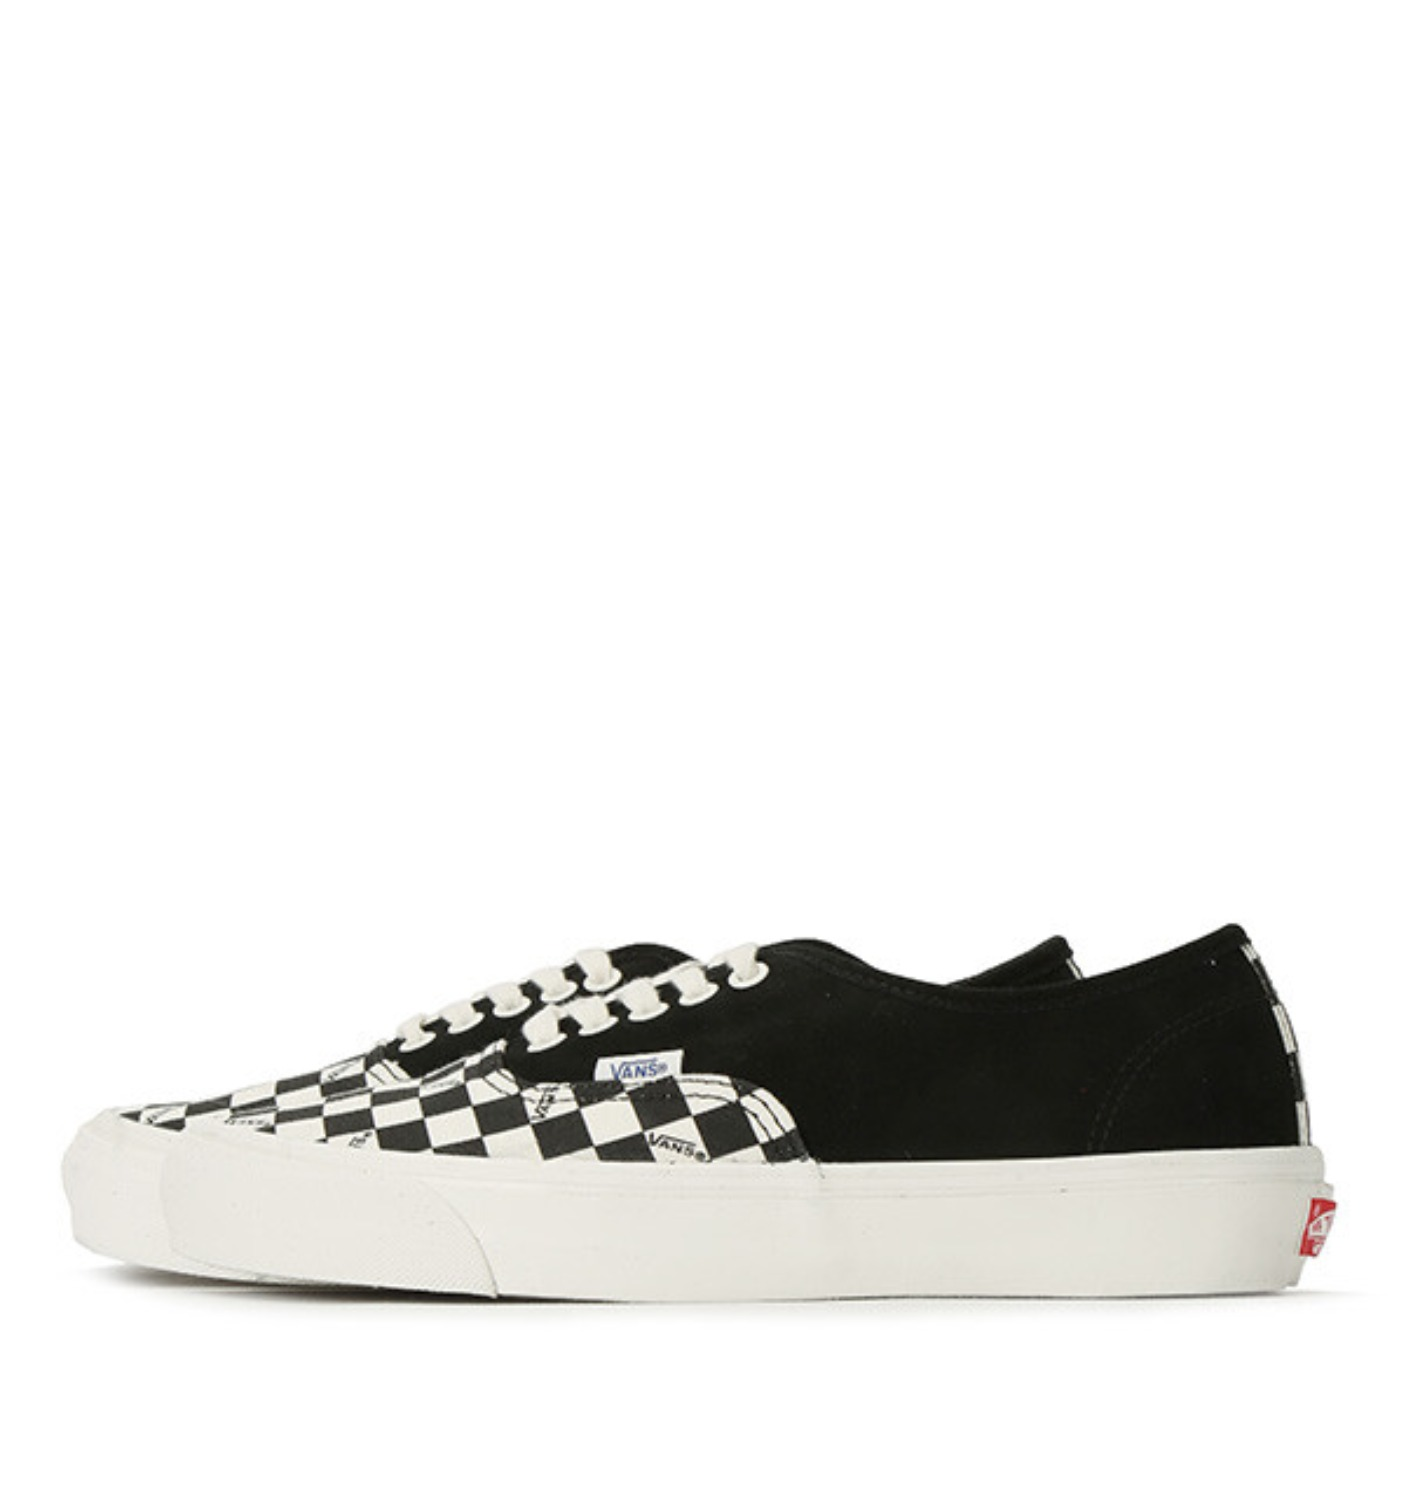 OG AUTHENTIC LX(SUEDE/CANVAS) BLACK/CHECKERBOARD